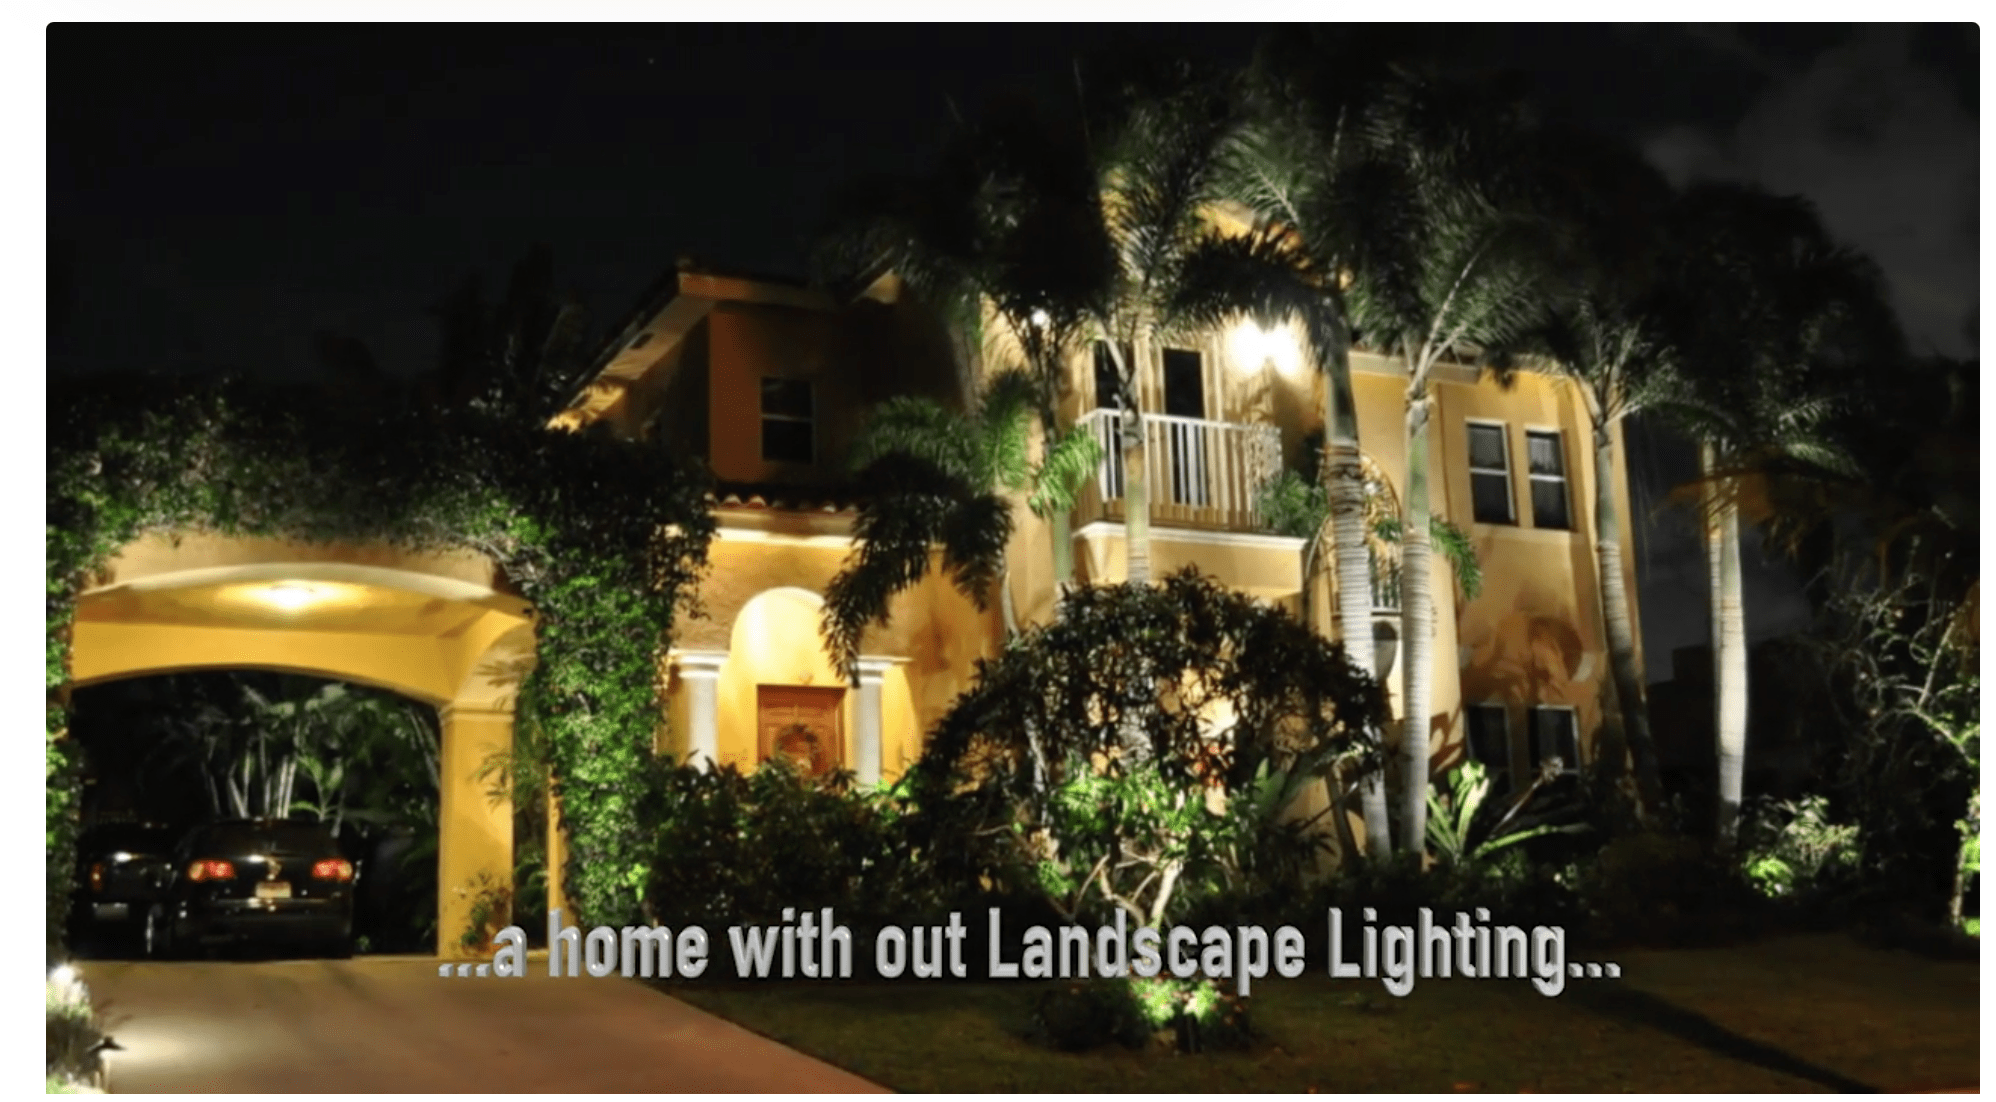 A Home without Landscape Lighting